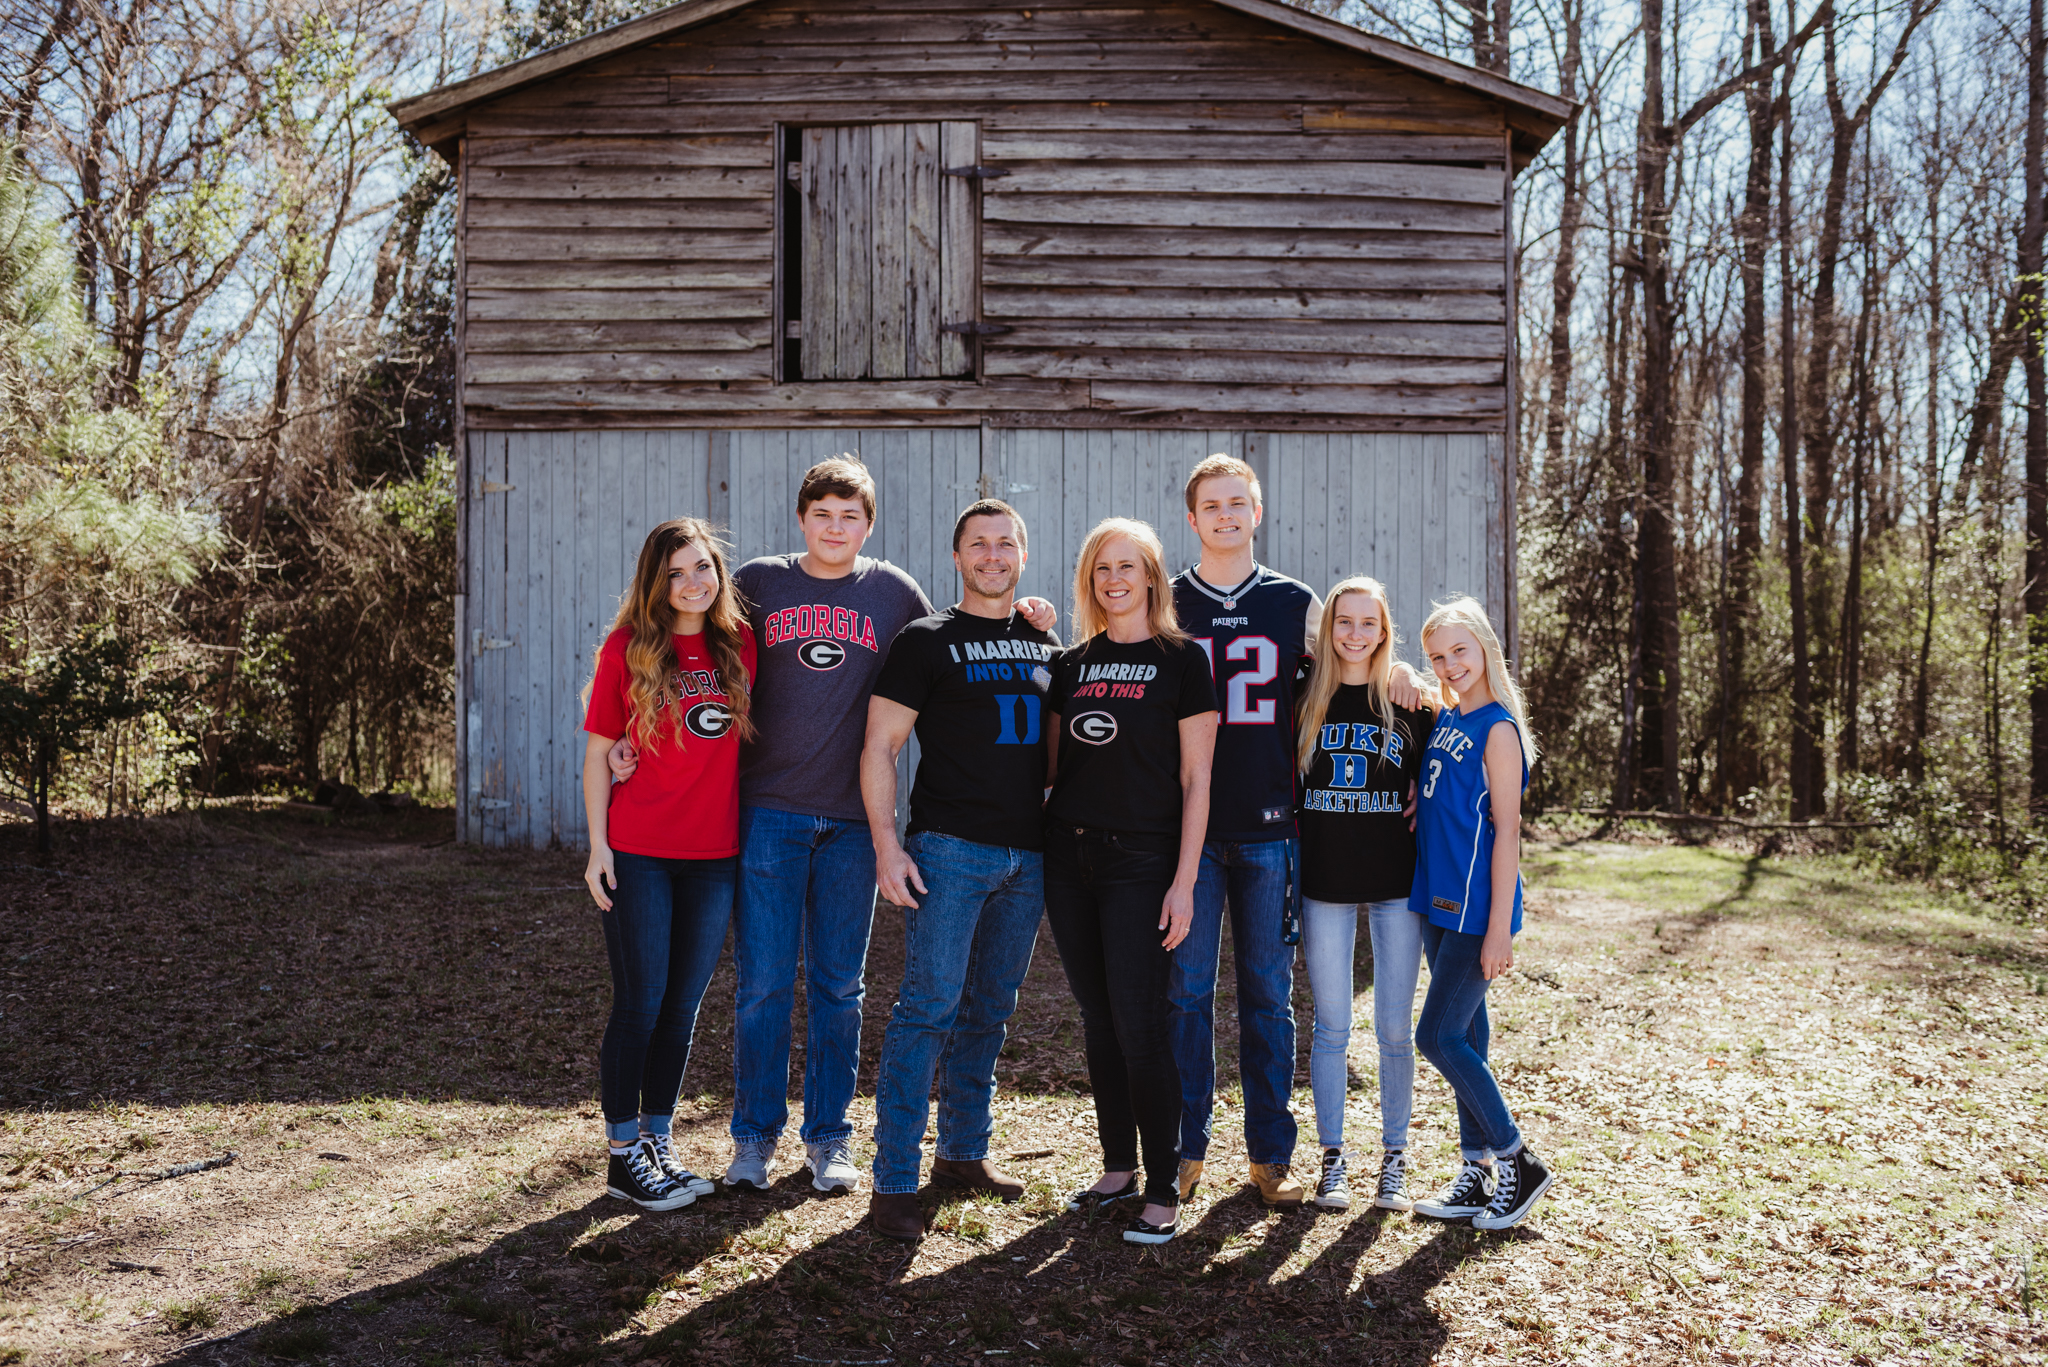 The couple stand together with their family during their engagement session with Rose Trail Images at a barn in Wake Forest, NC.